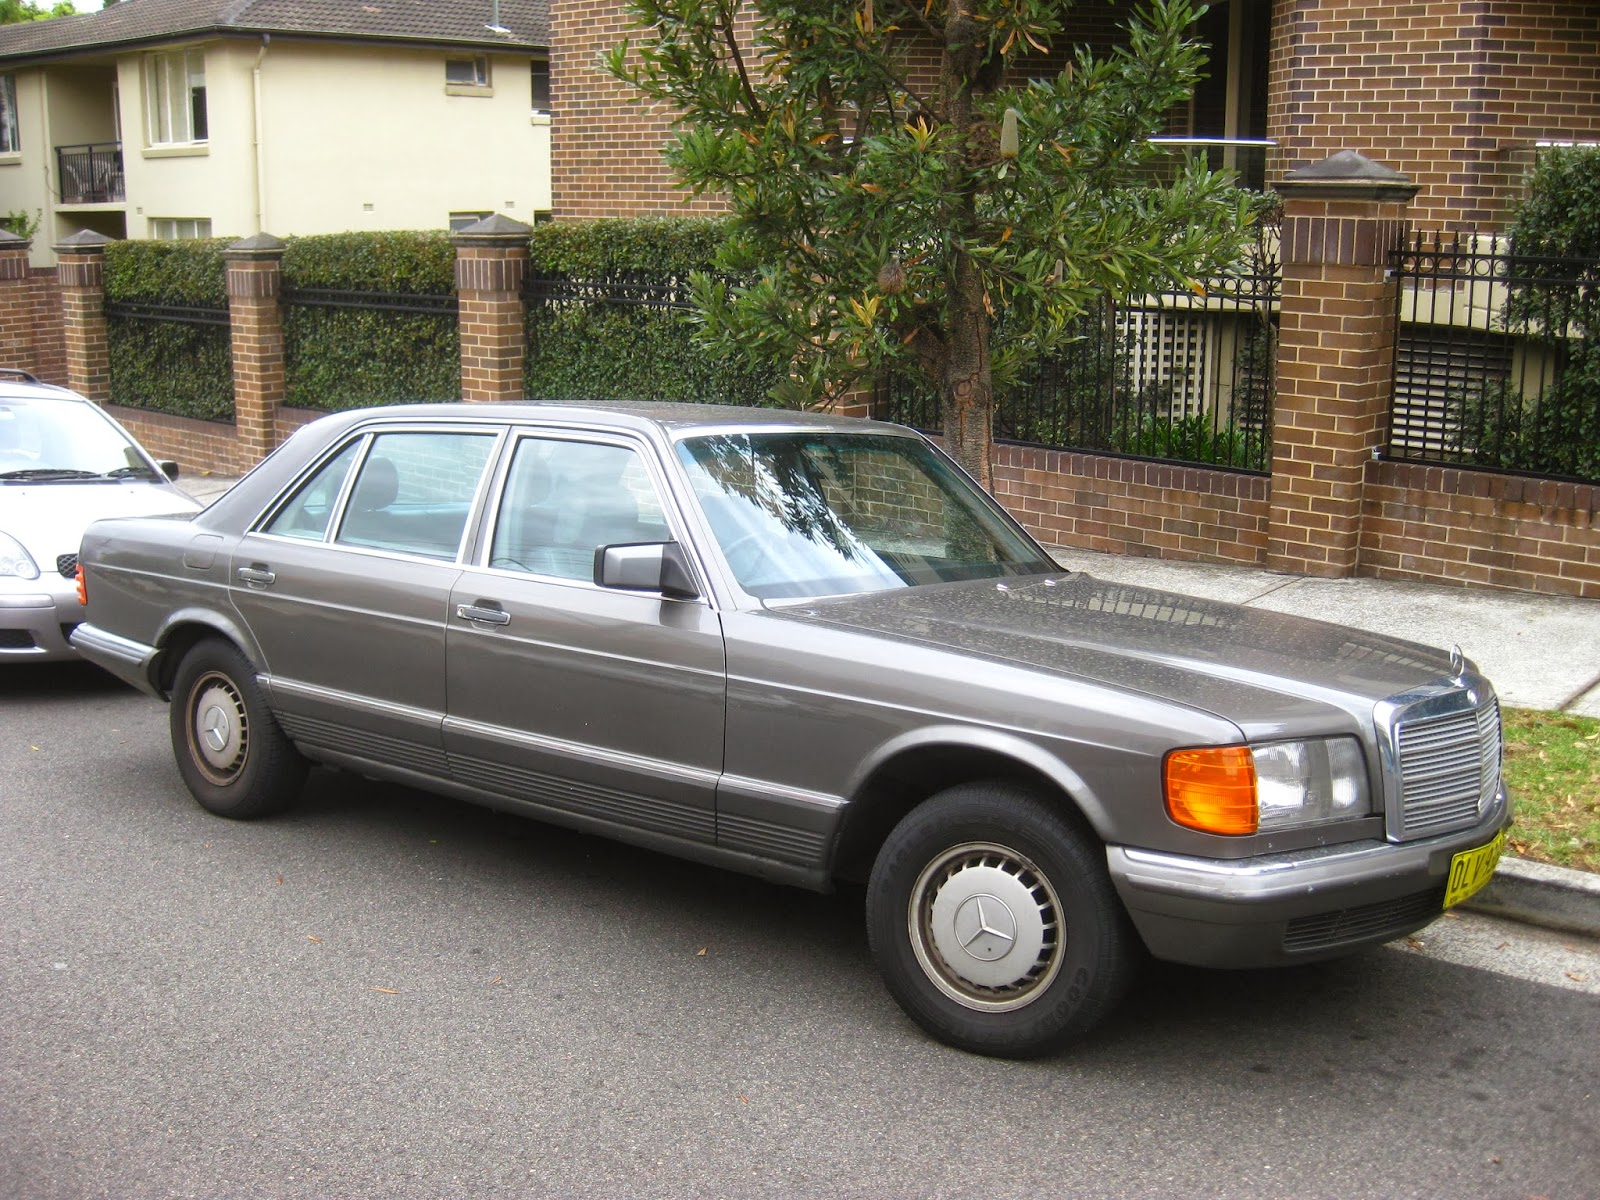 Aussie old parked cars 1985 mercedes benz w126 500 sel for 1985 mercedes benz 500sel